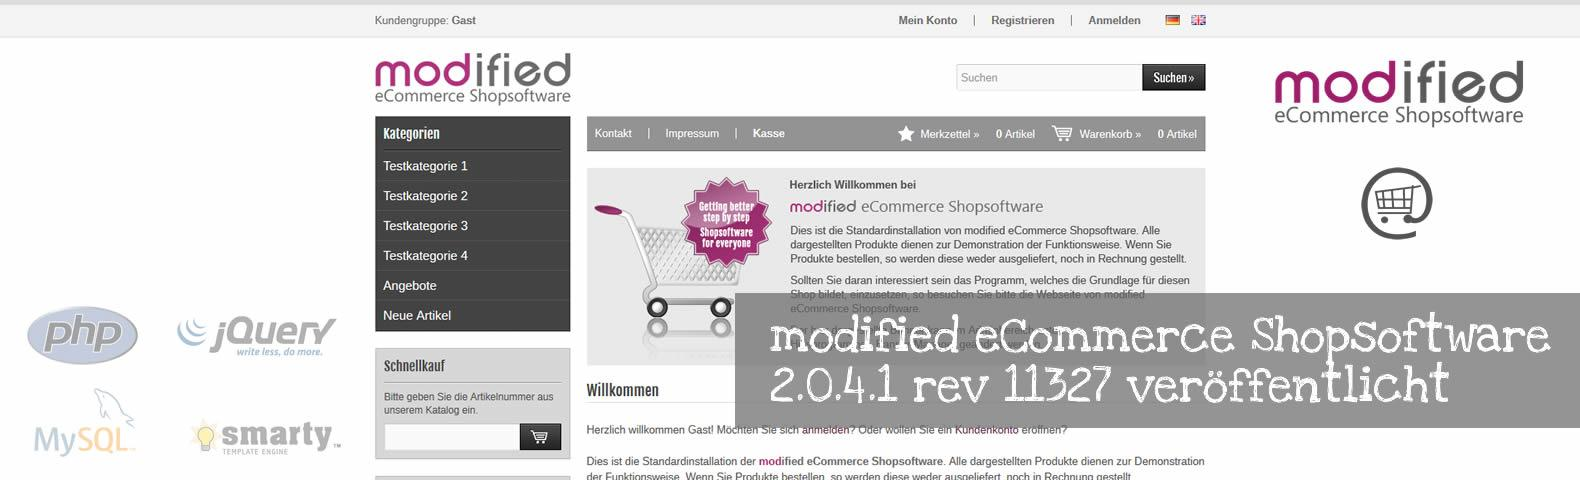 modified eCommerce Shopsoftware 2.0.4.1 rev 11327 veröffentlicht